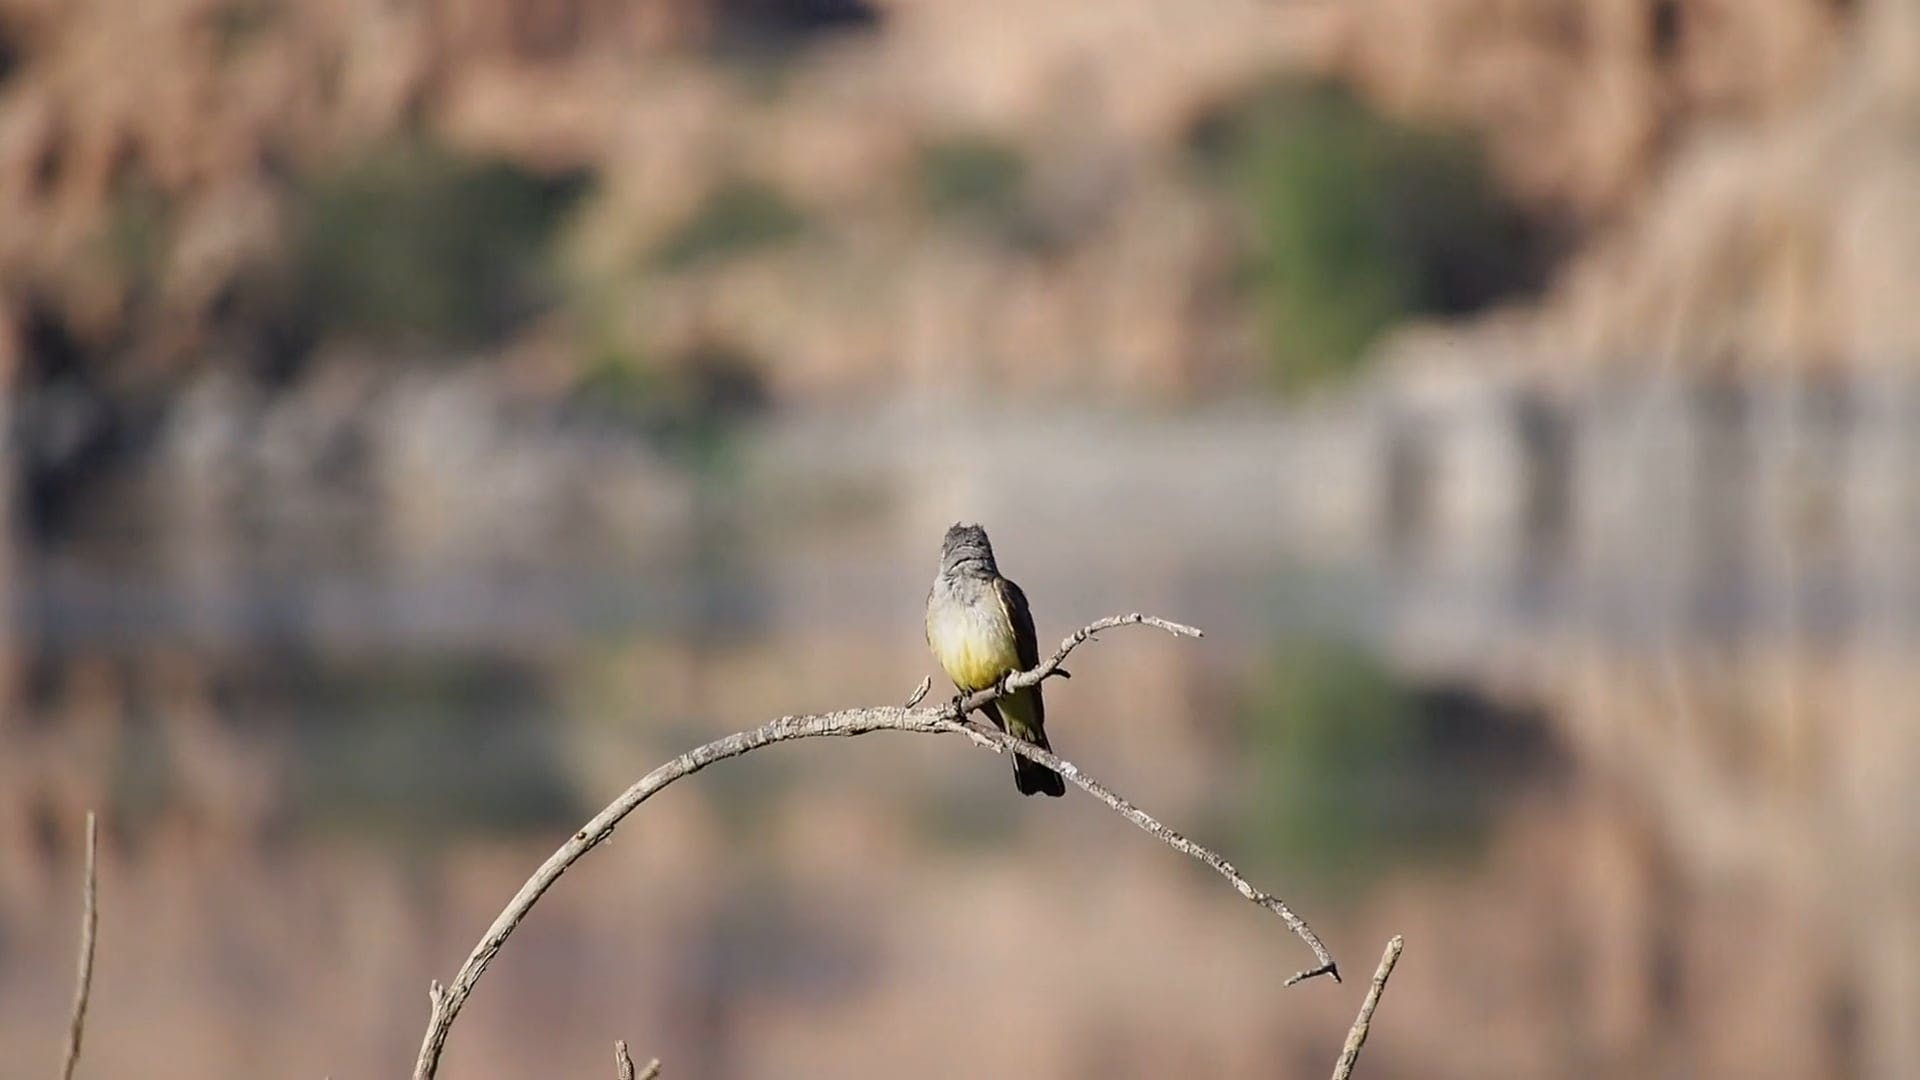 Bird Perched on a Bent Branch